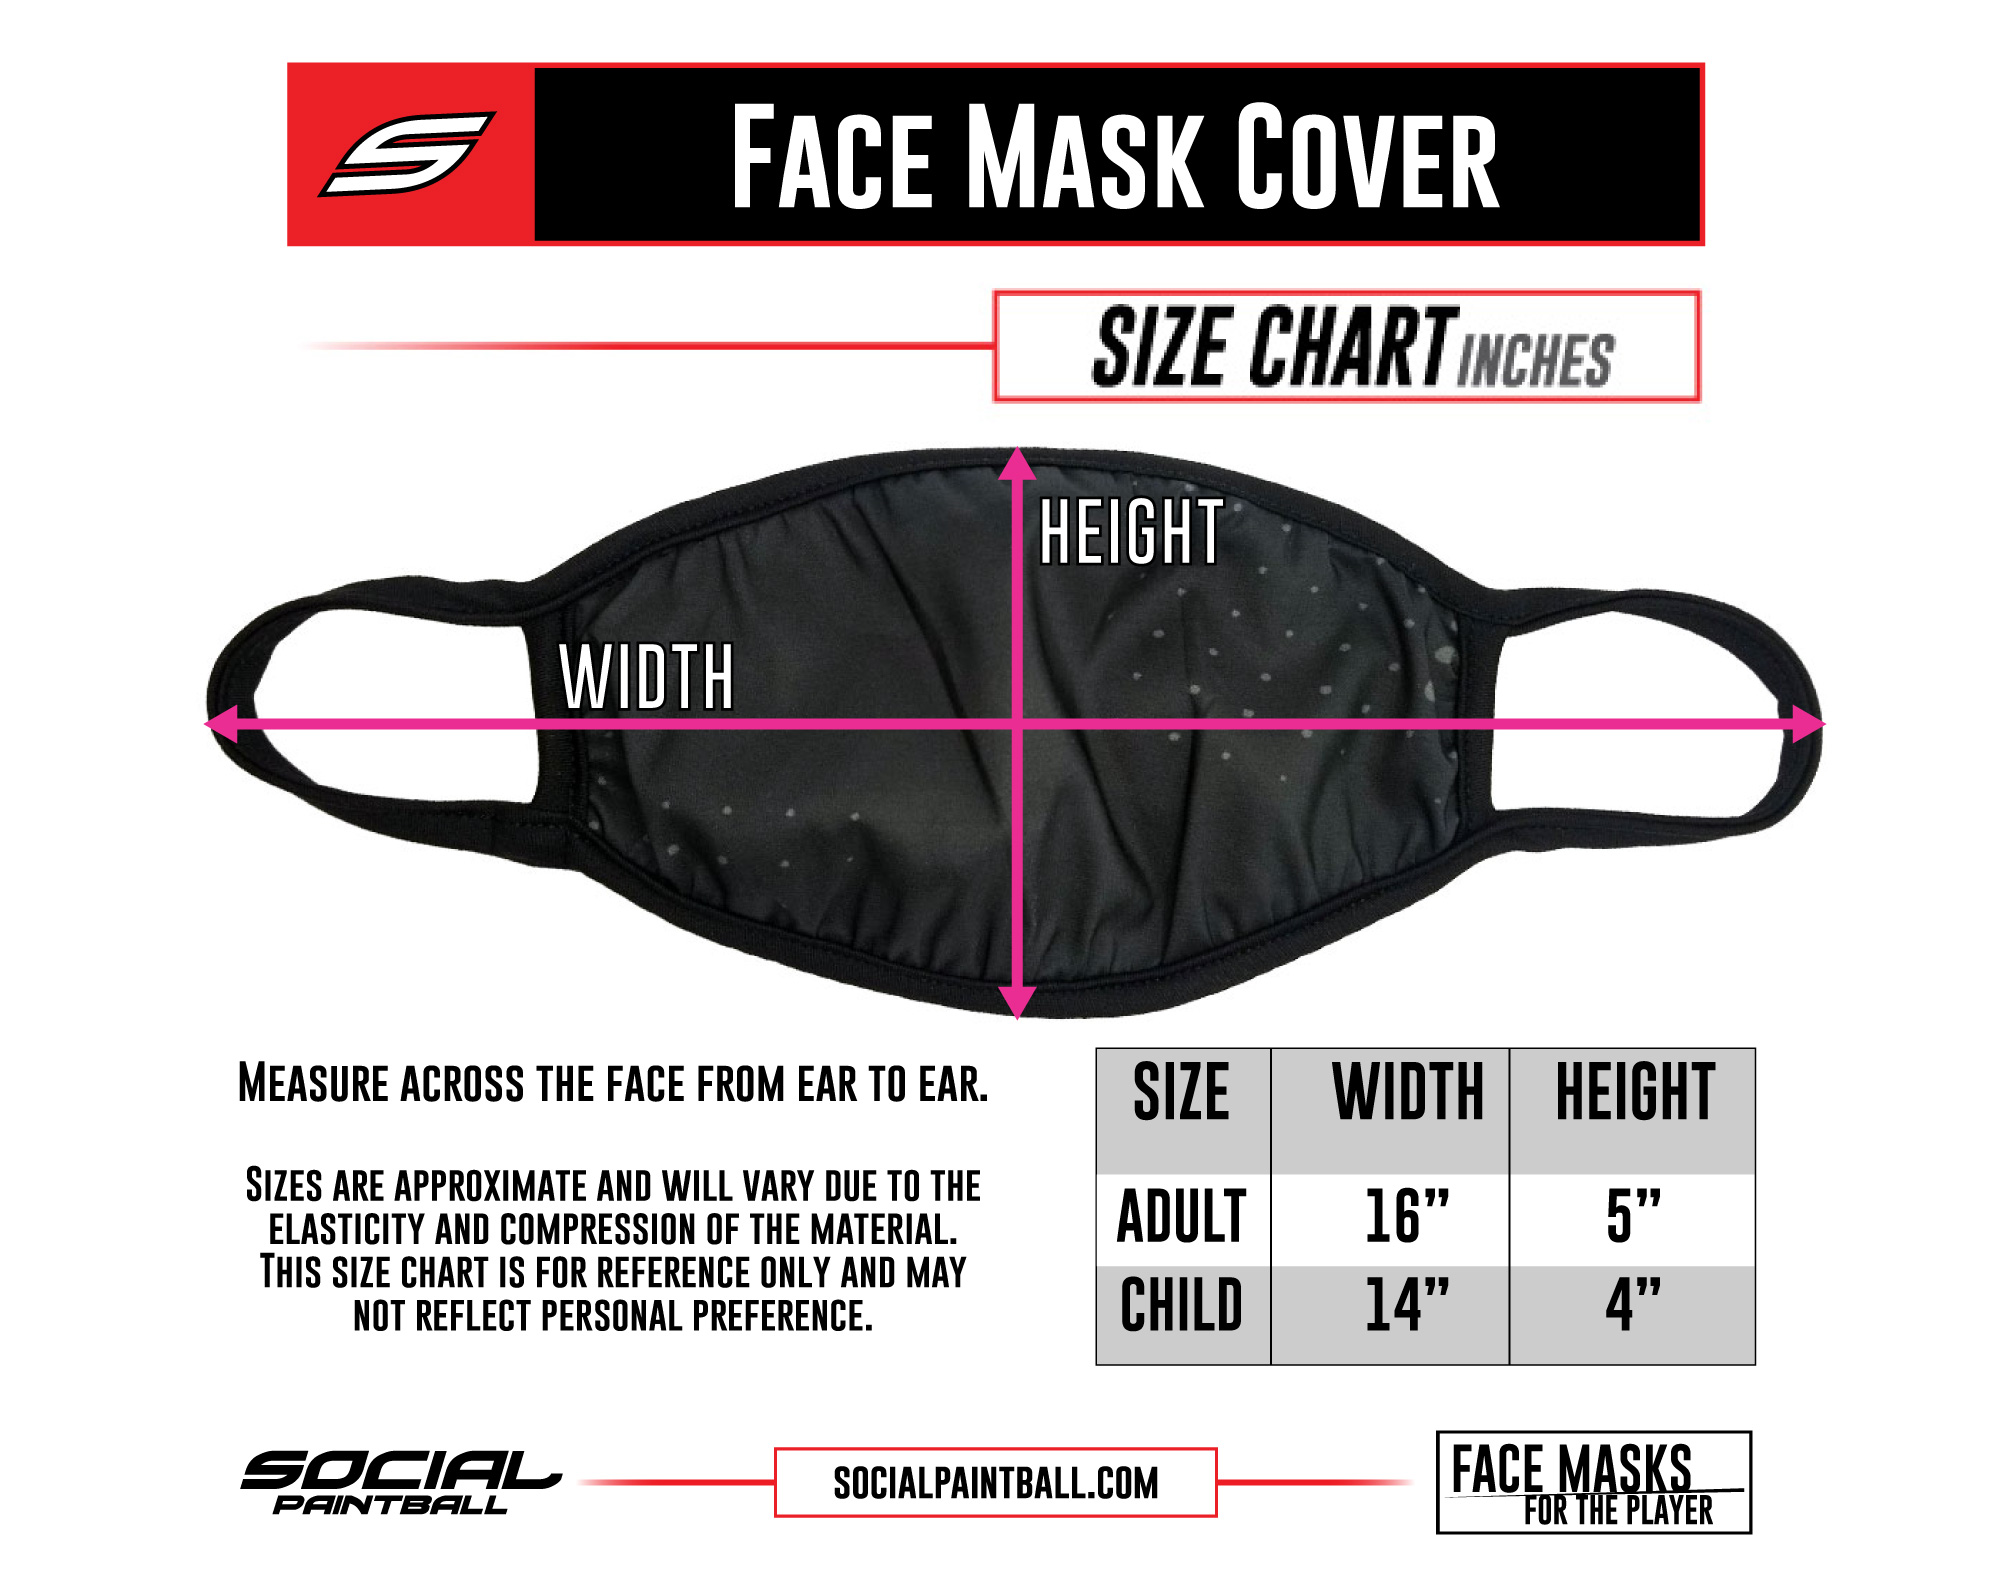 Social Paintball Face Mask Cover Size Chart